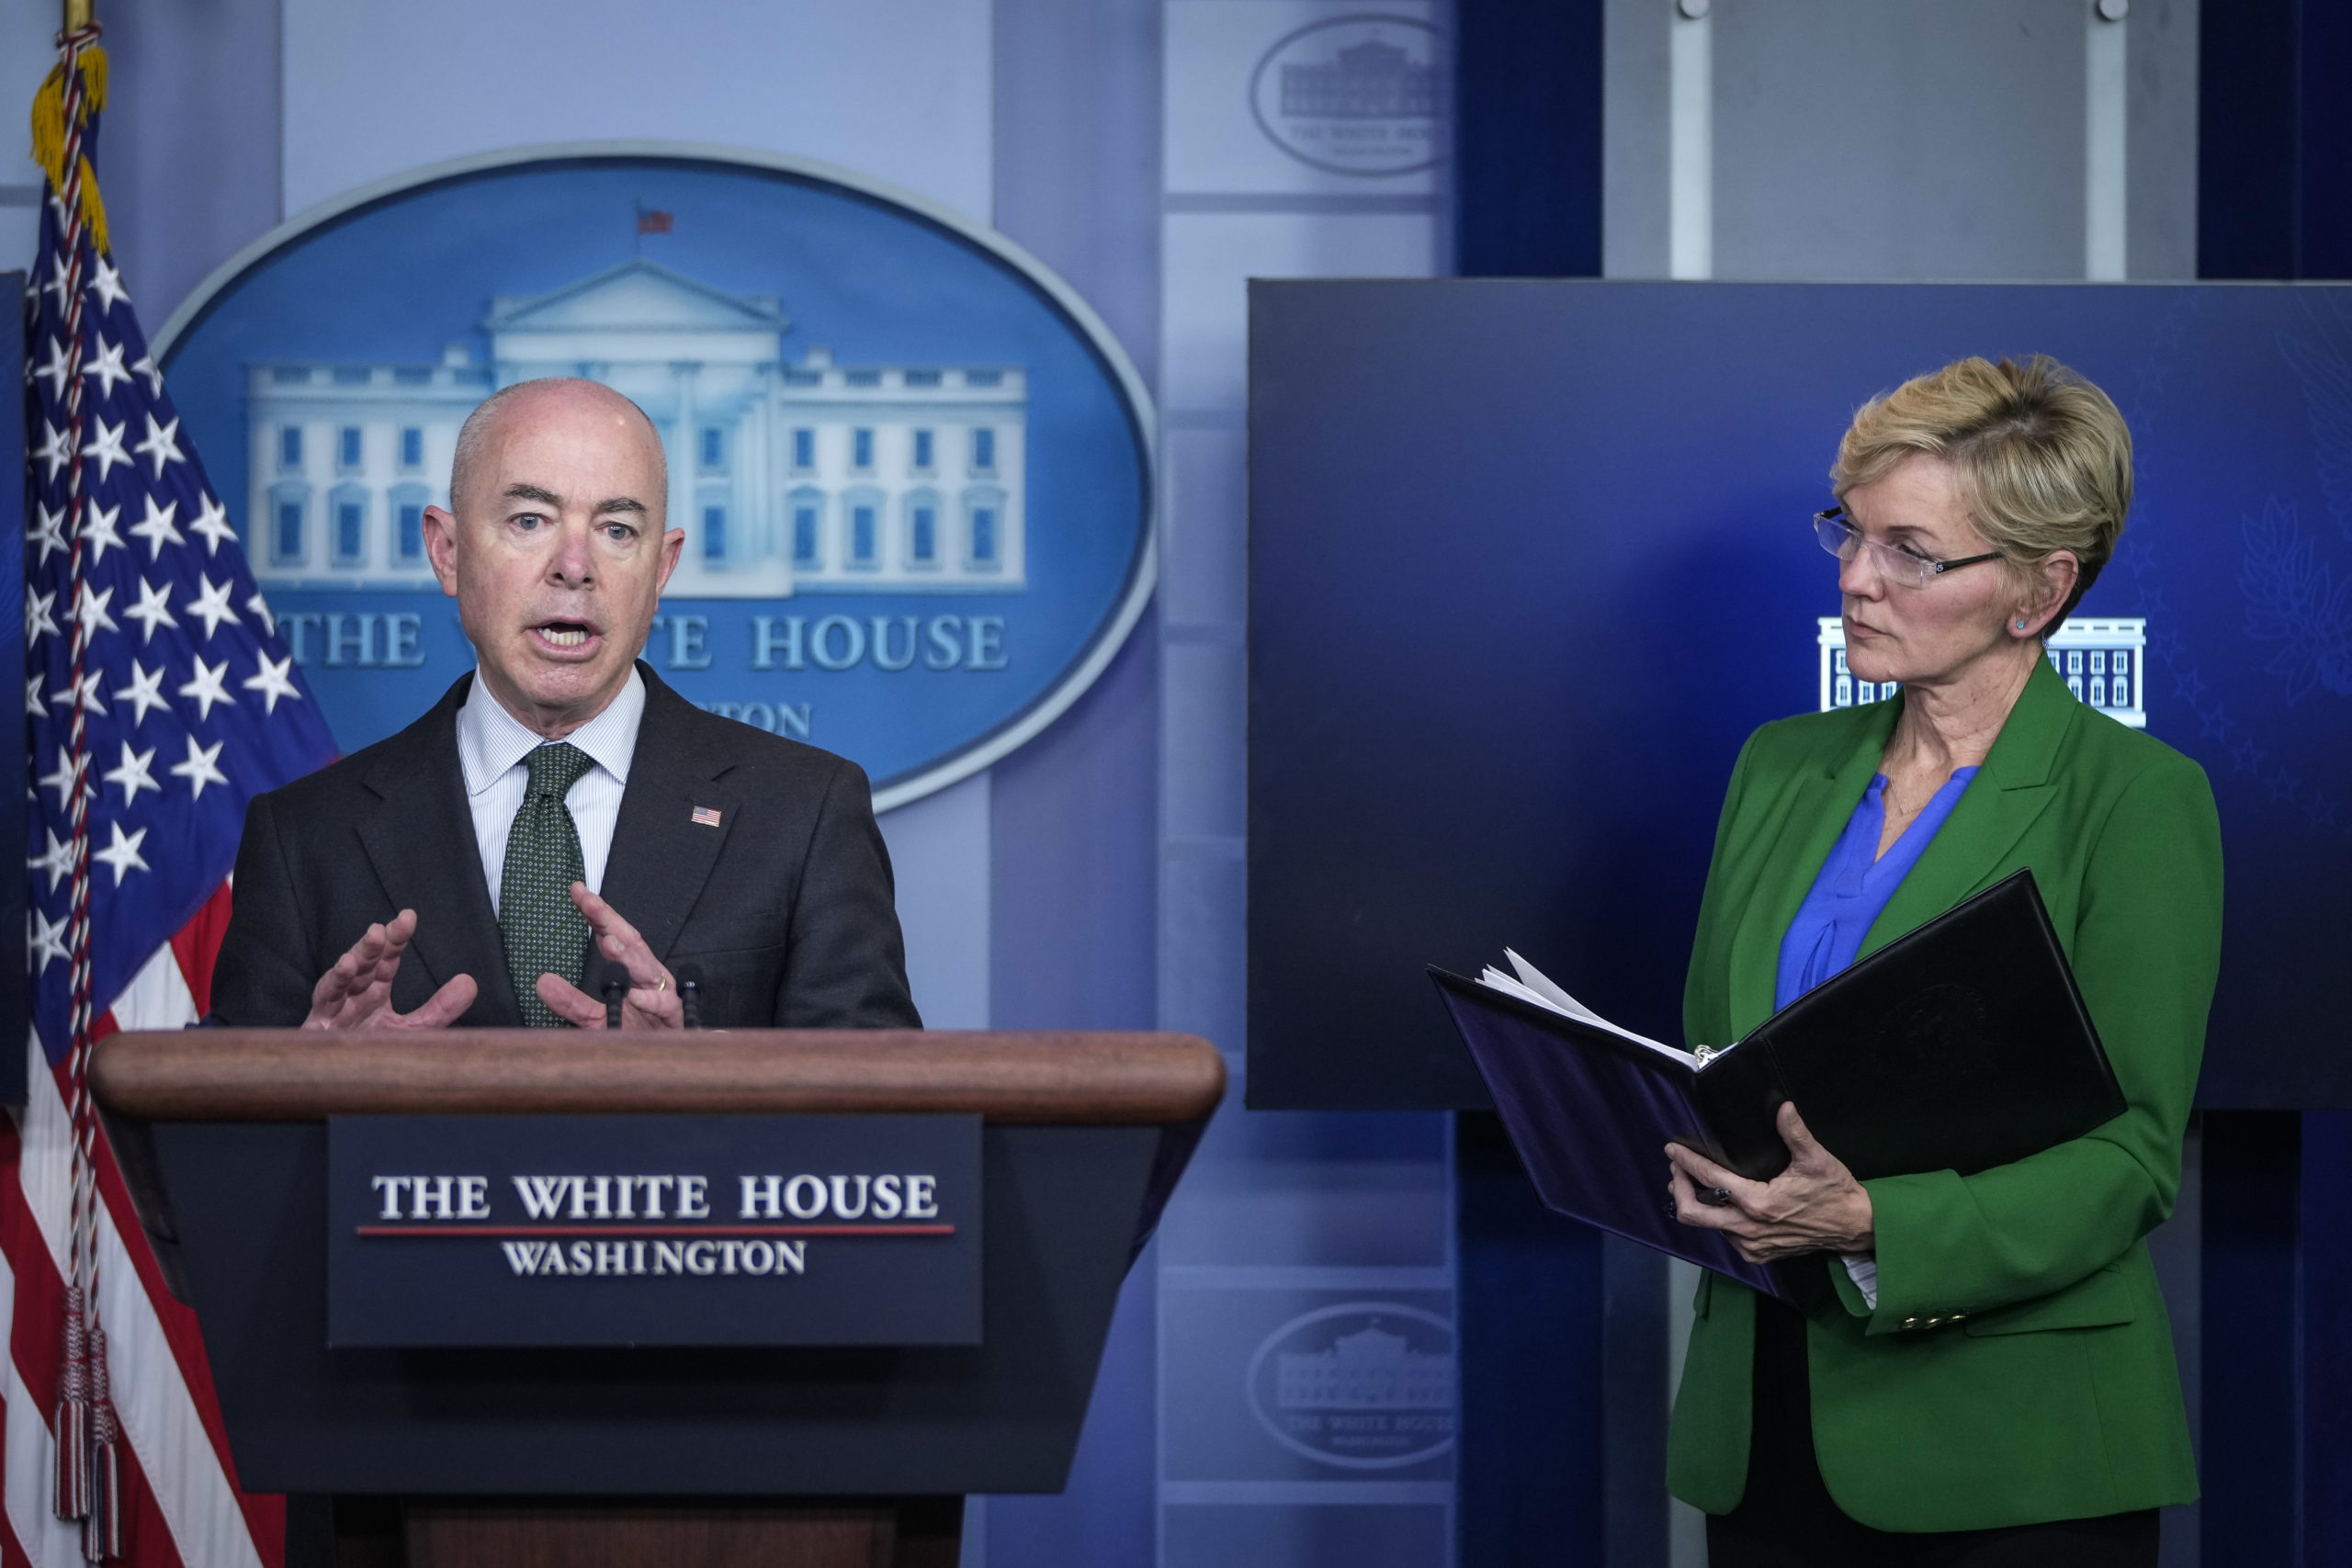 Secretary of Homeland Security Alejandro Mayorkas and Secretary of Energy Jennifer Granholm brief reporters on the cyber attack on the Colonial Pipeline. (Photo by Drew Angerer/Getty Images)